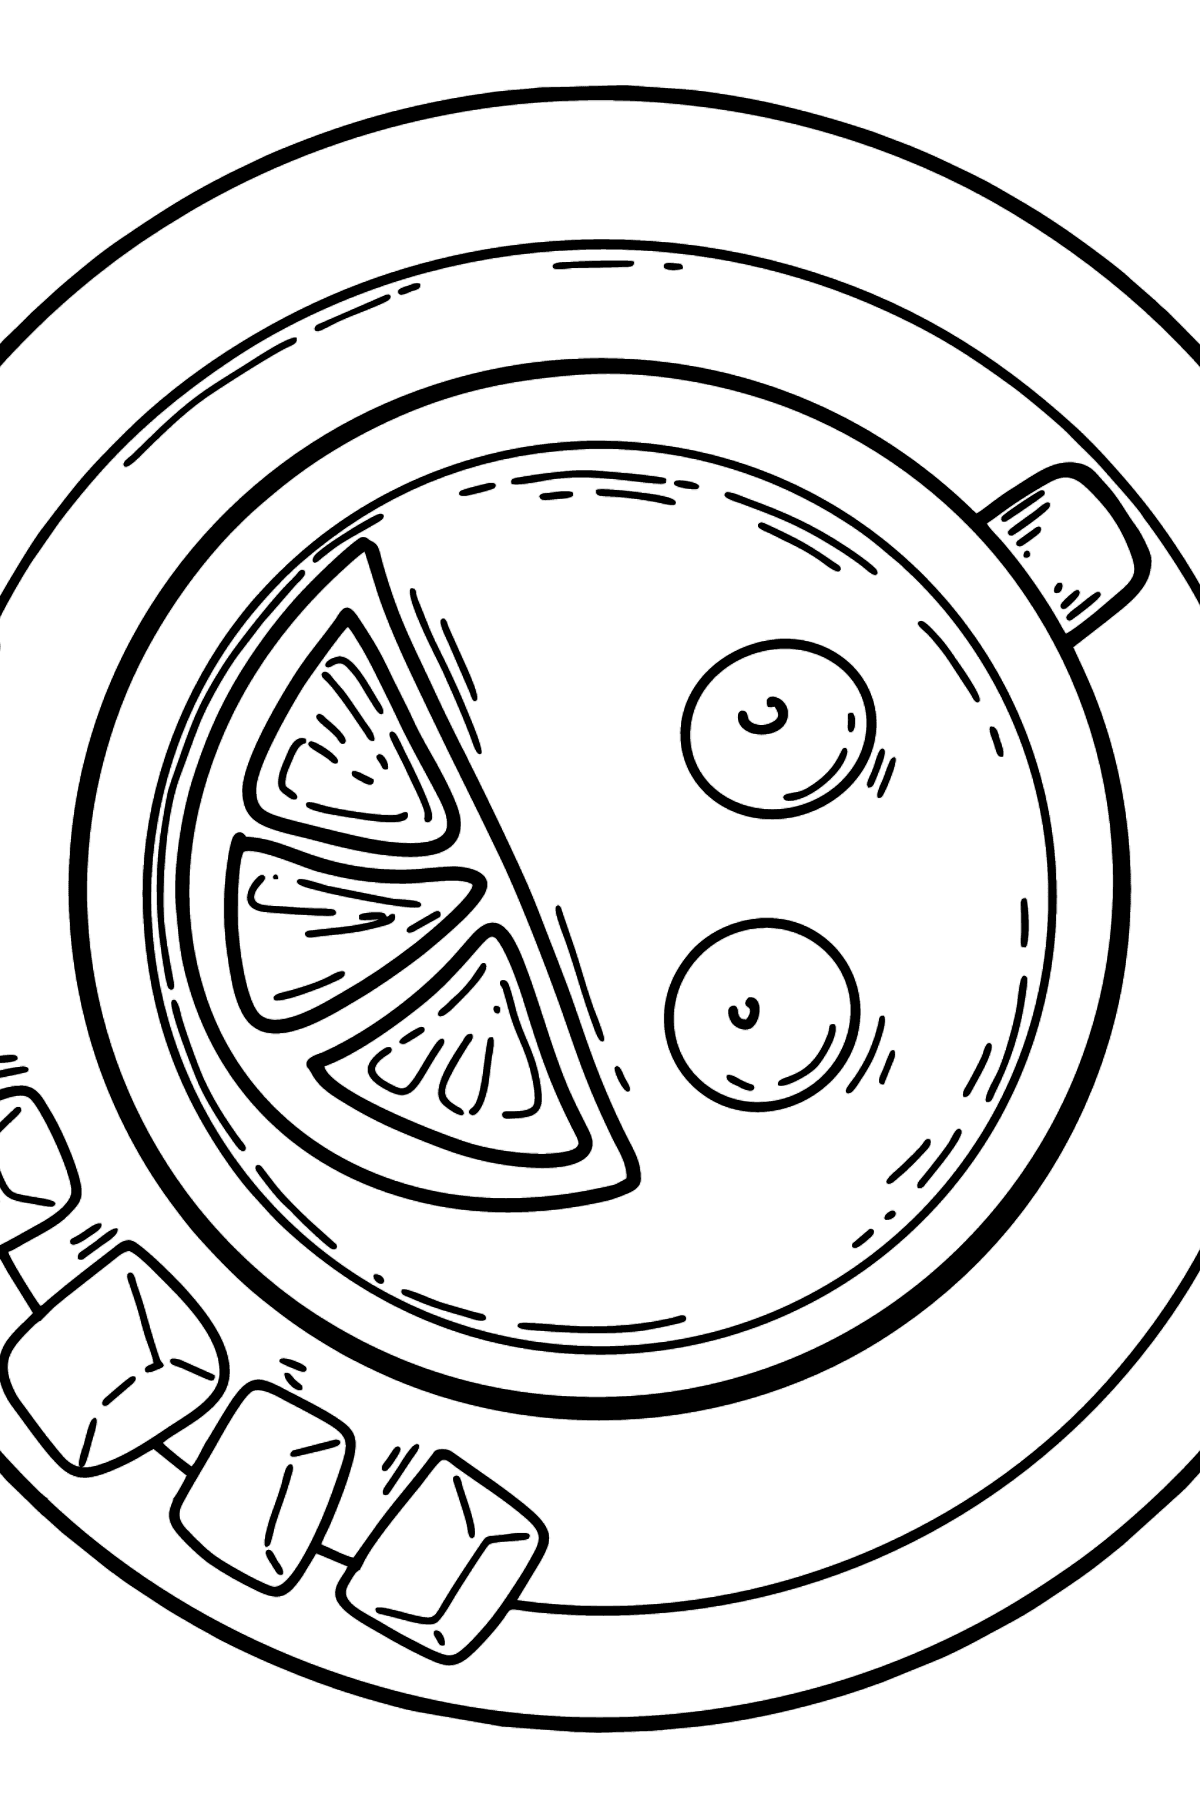 Coloring page - cup of tea - Coloring Pages for Kids